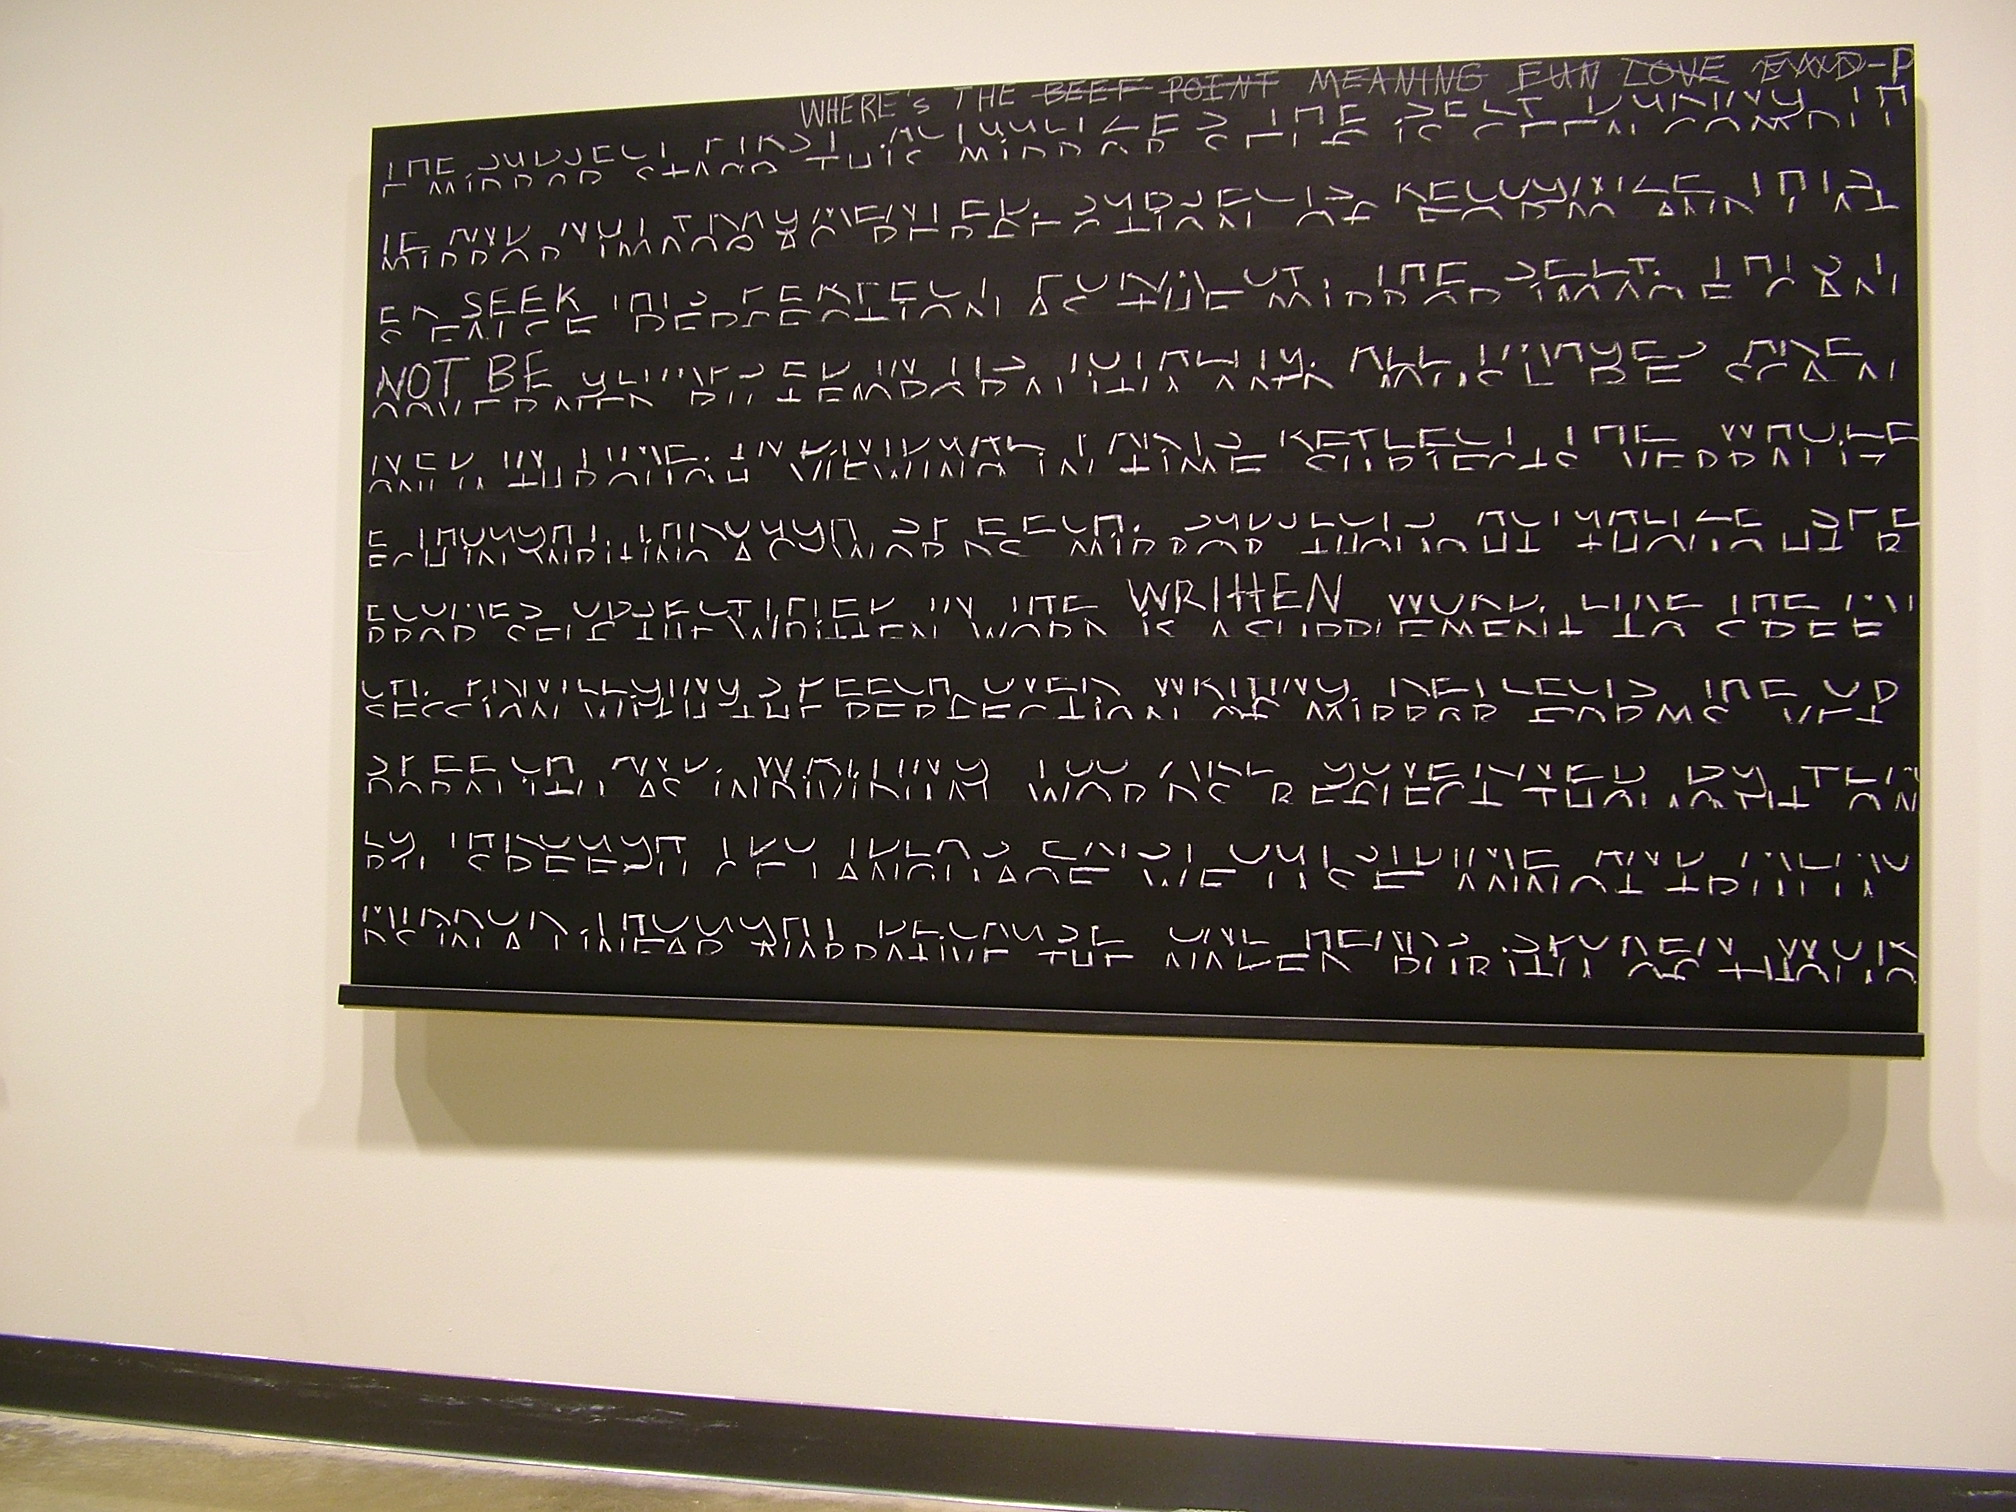 "Logocentric Playground: The Subject ; 2006; blackboard paint; chalk, pastel, pencil on birch panel; H48""xW69"" (Beginning of public interaction:  ""Where's the beef…"")"